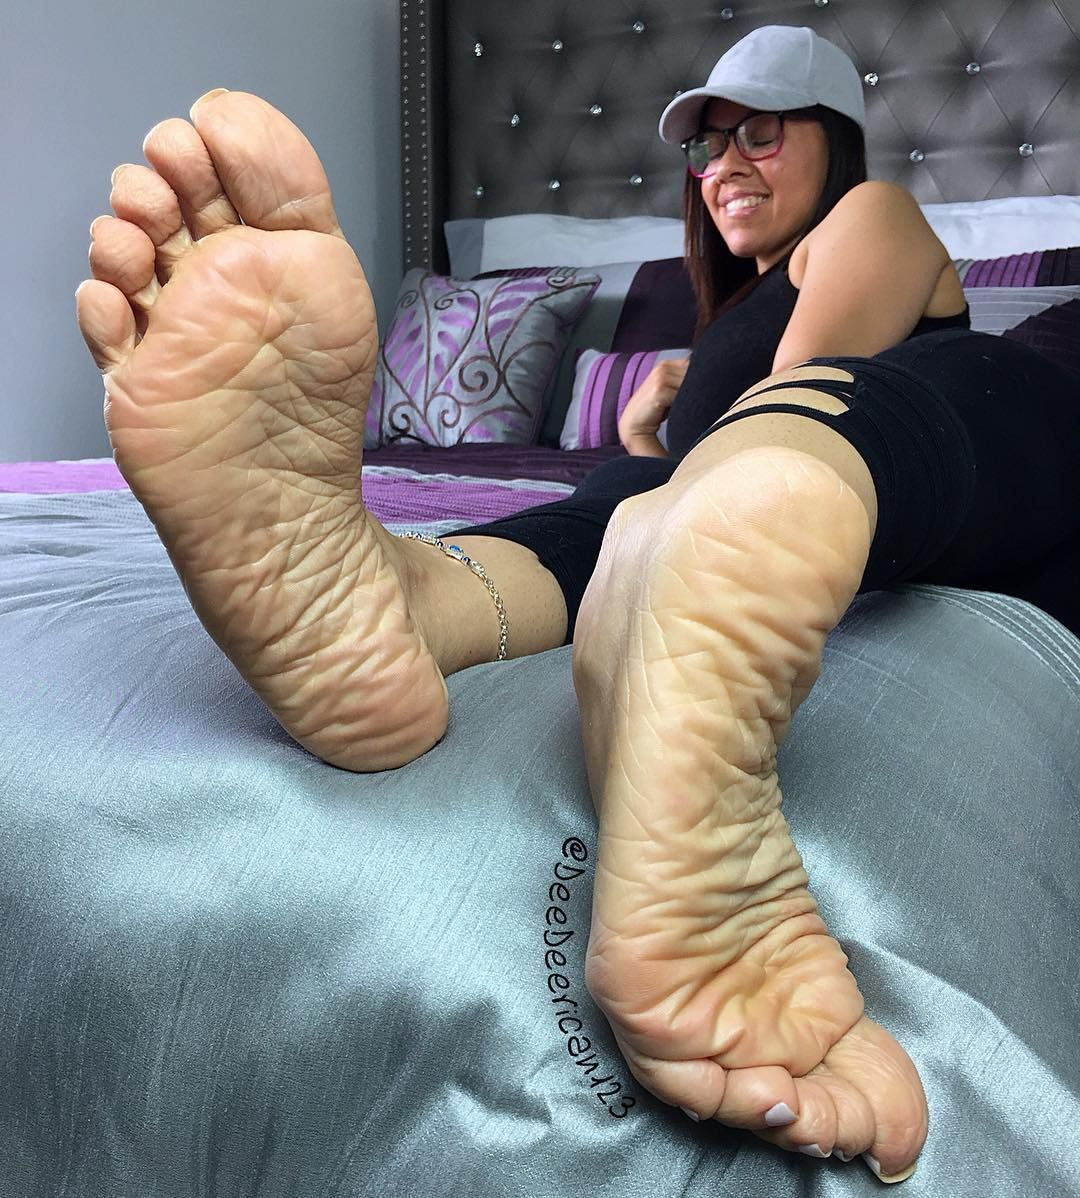 Pin by 🎮 on Feet | Pinterest | Pose and Sexy feet